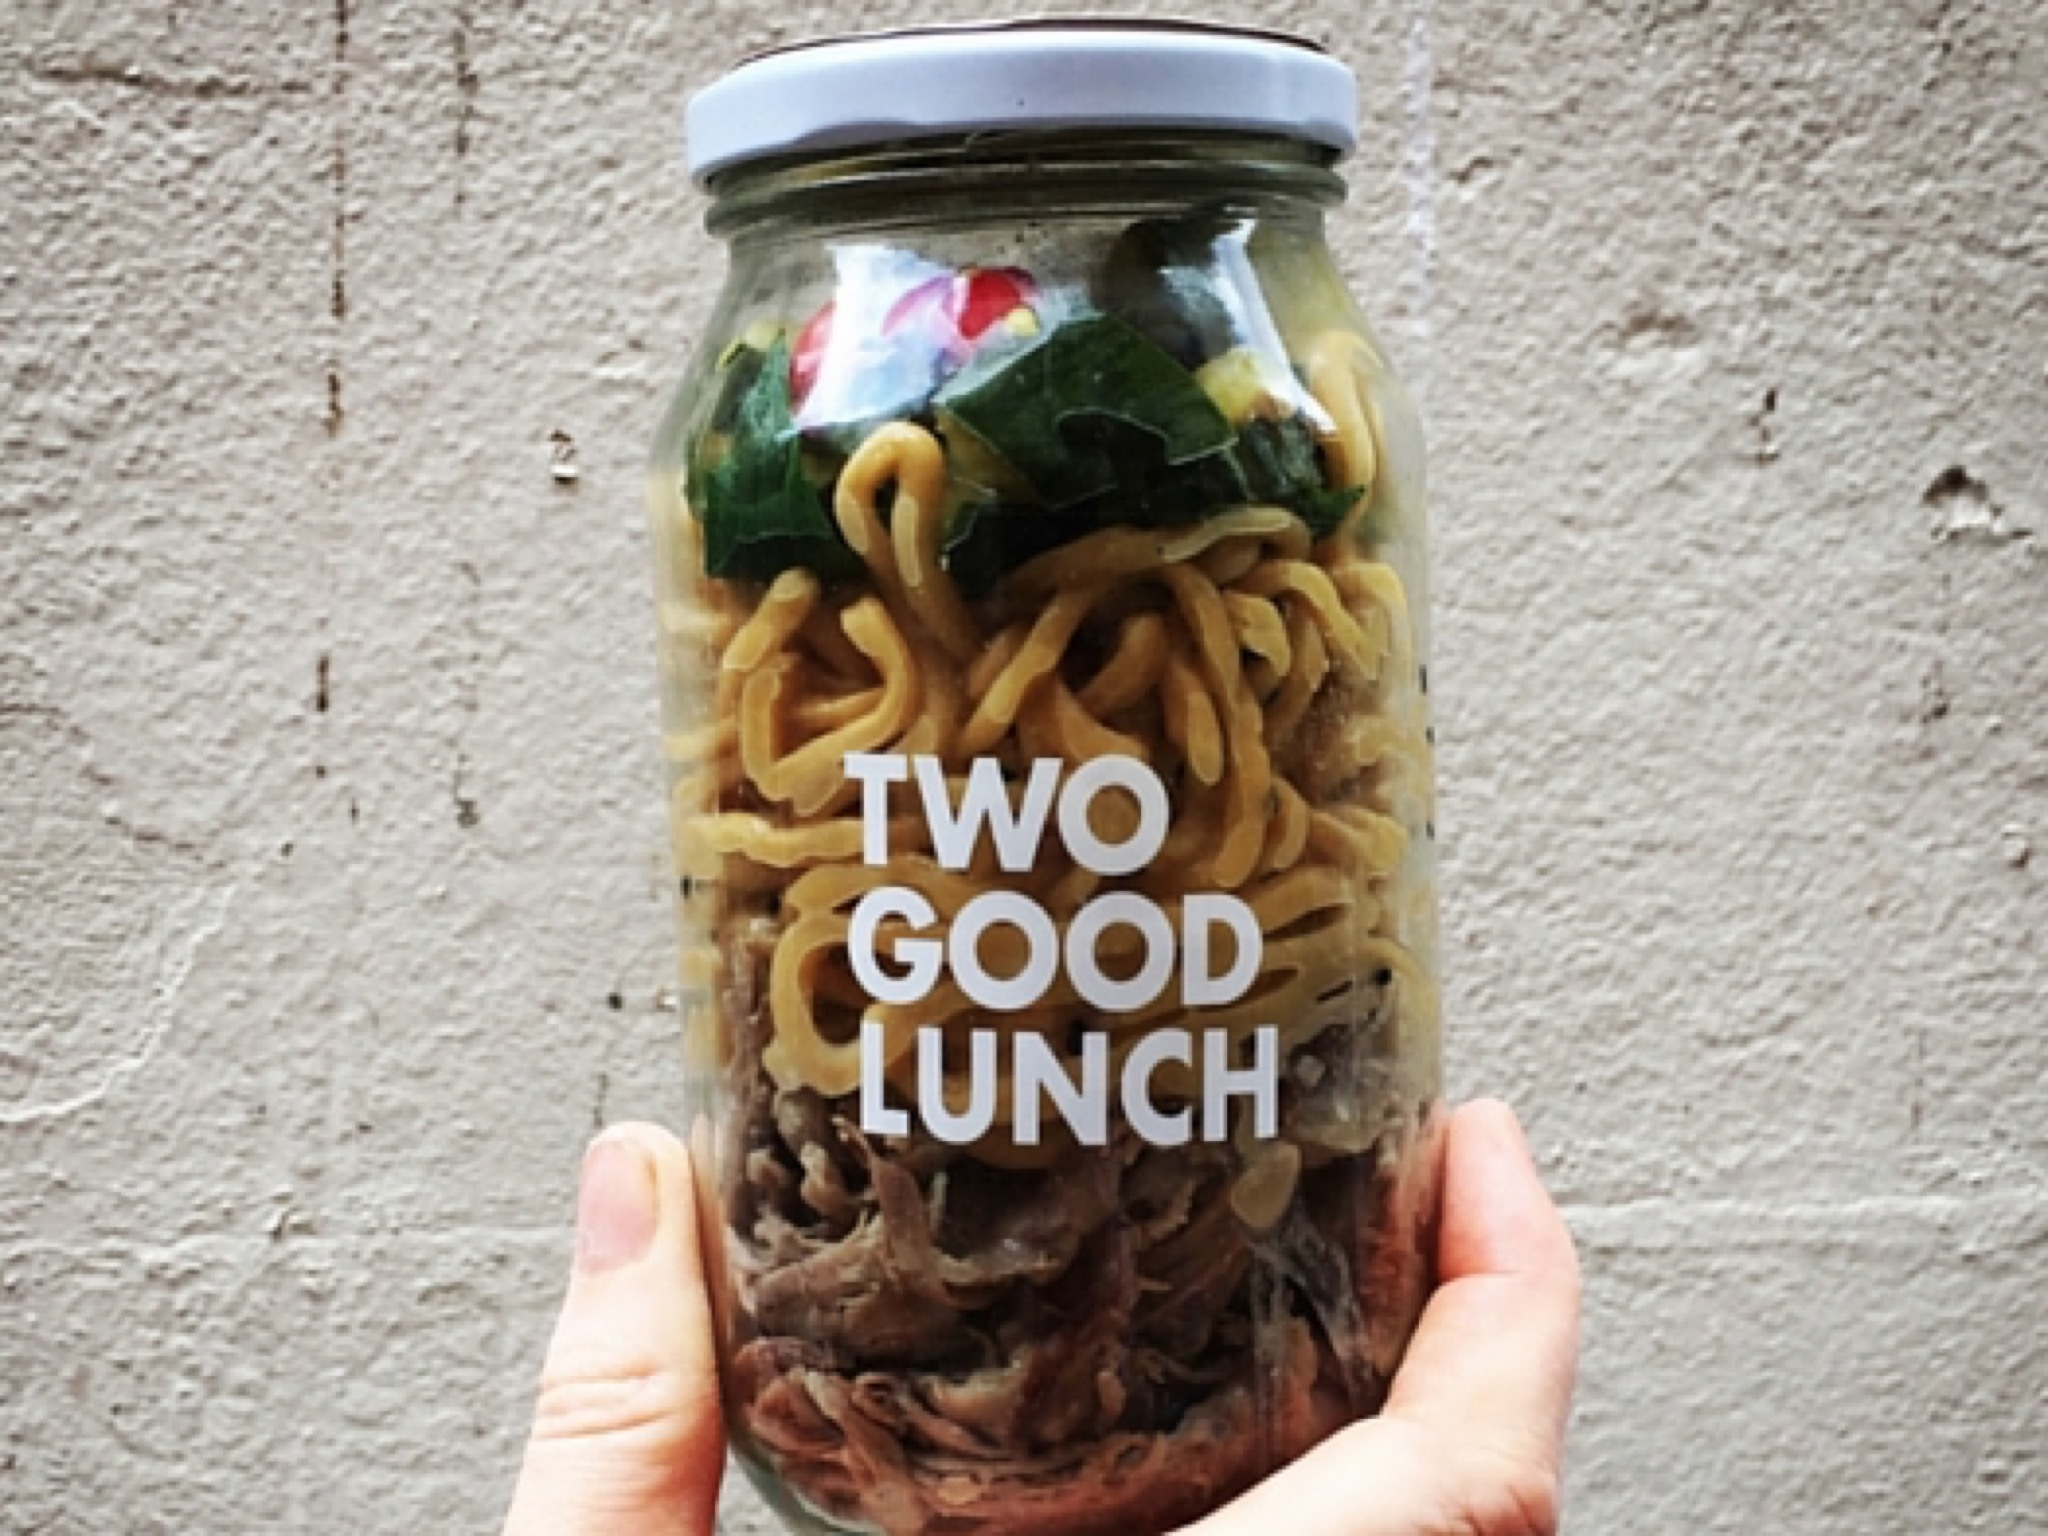 A jar filled with egg noodles and salad